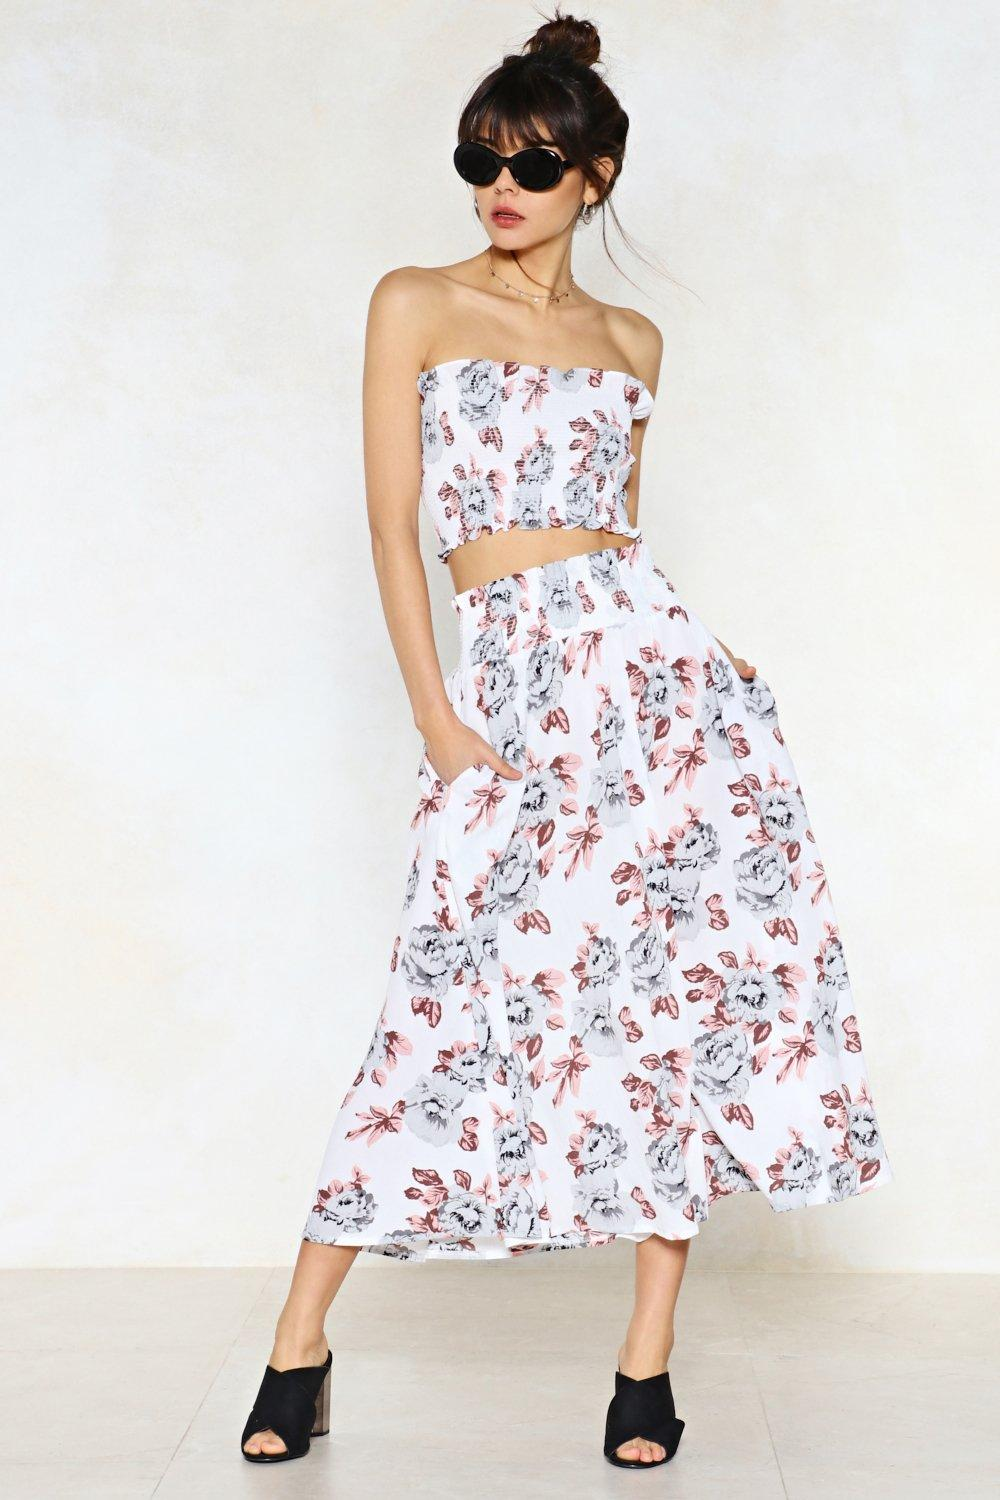 NASTY GAL Late Bloomer Floral Crop Top and Skirt Set